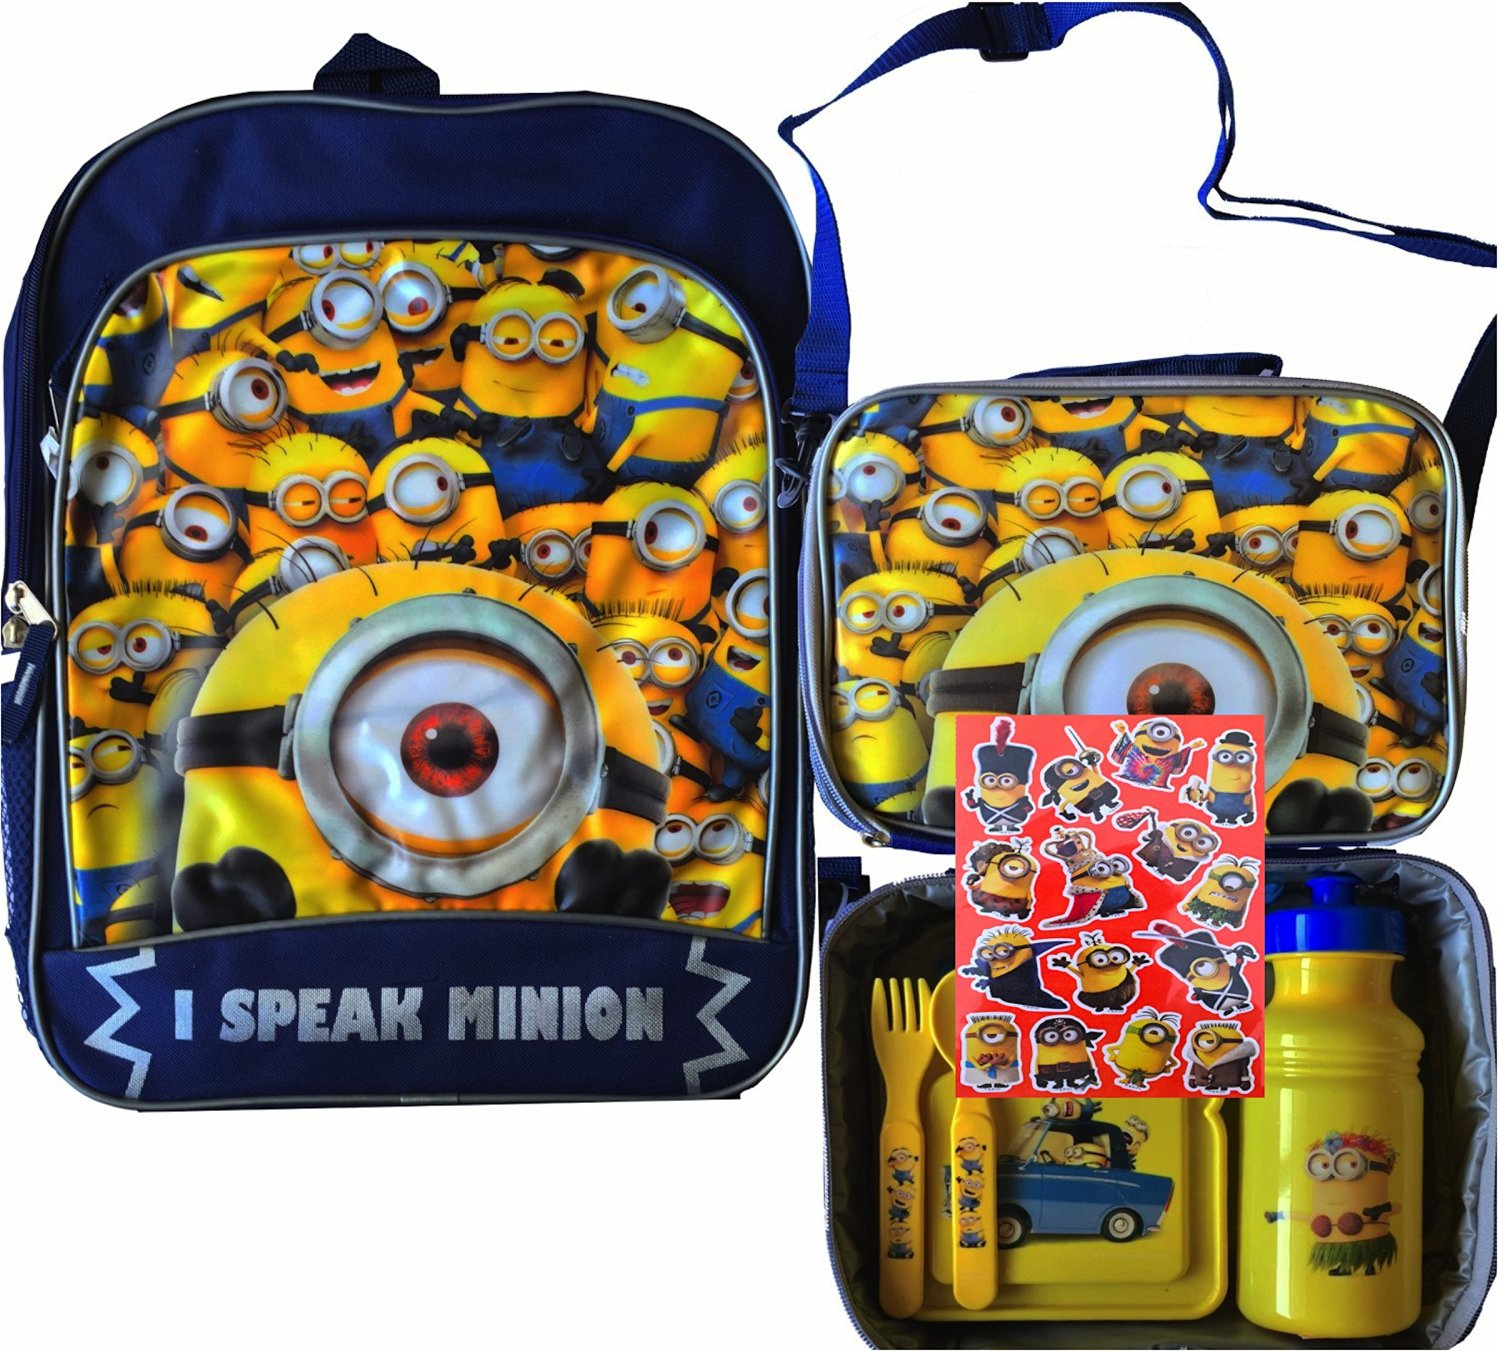 fd113d449959 Get Quotations · Despicable Me Minions School Backpack with Despicable Me  Minions Strap Lunch Box Perfect to Carry on